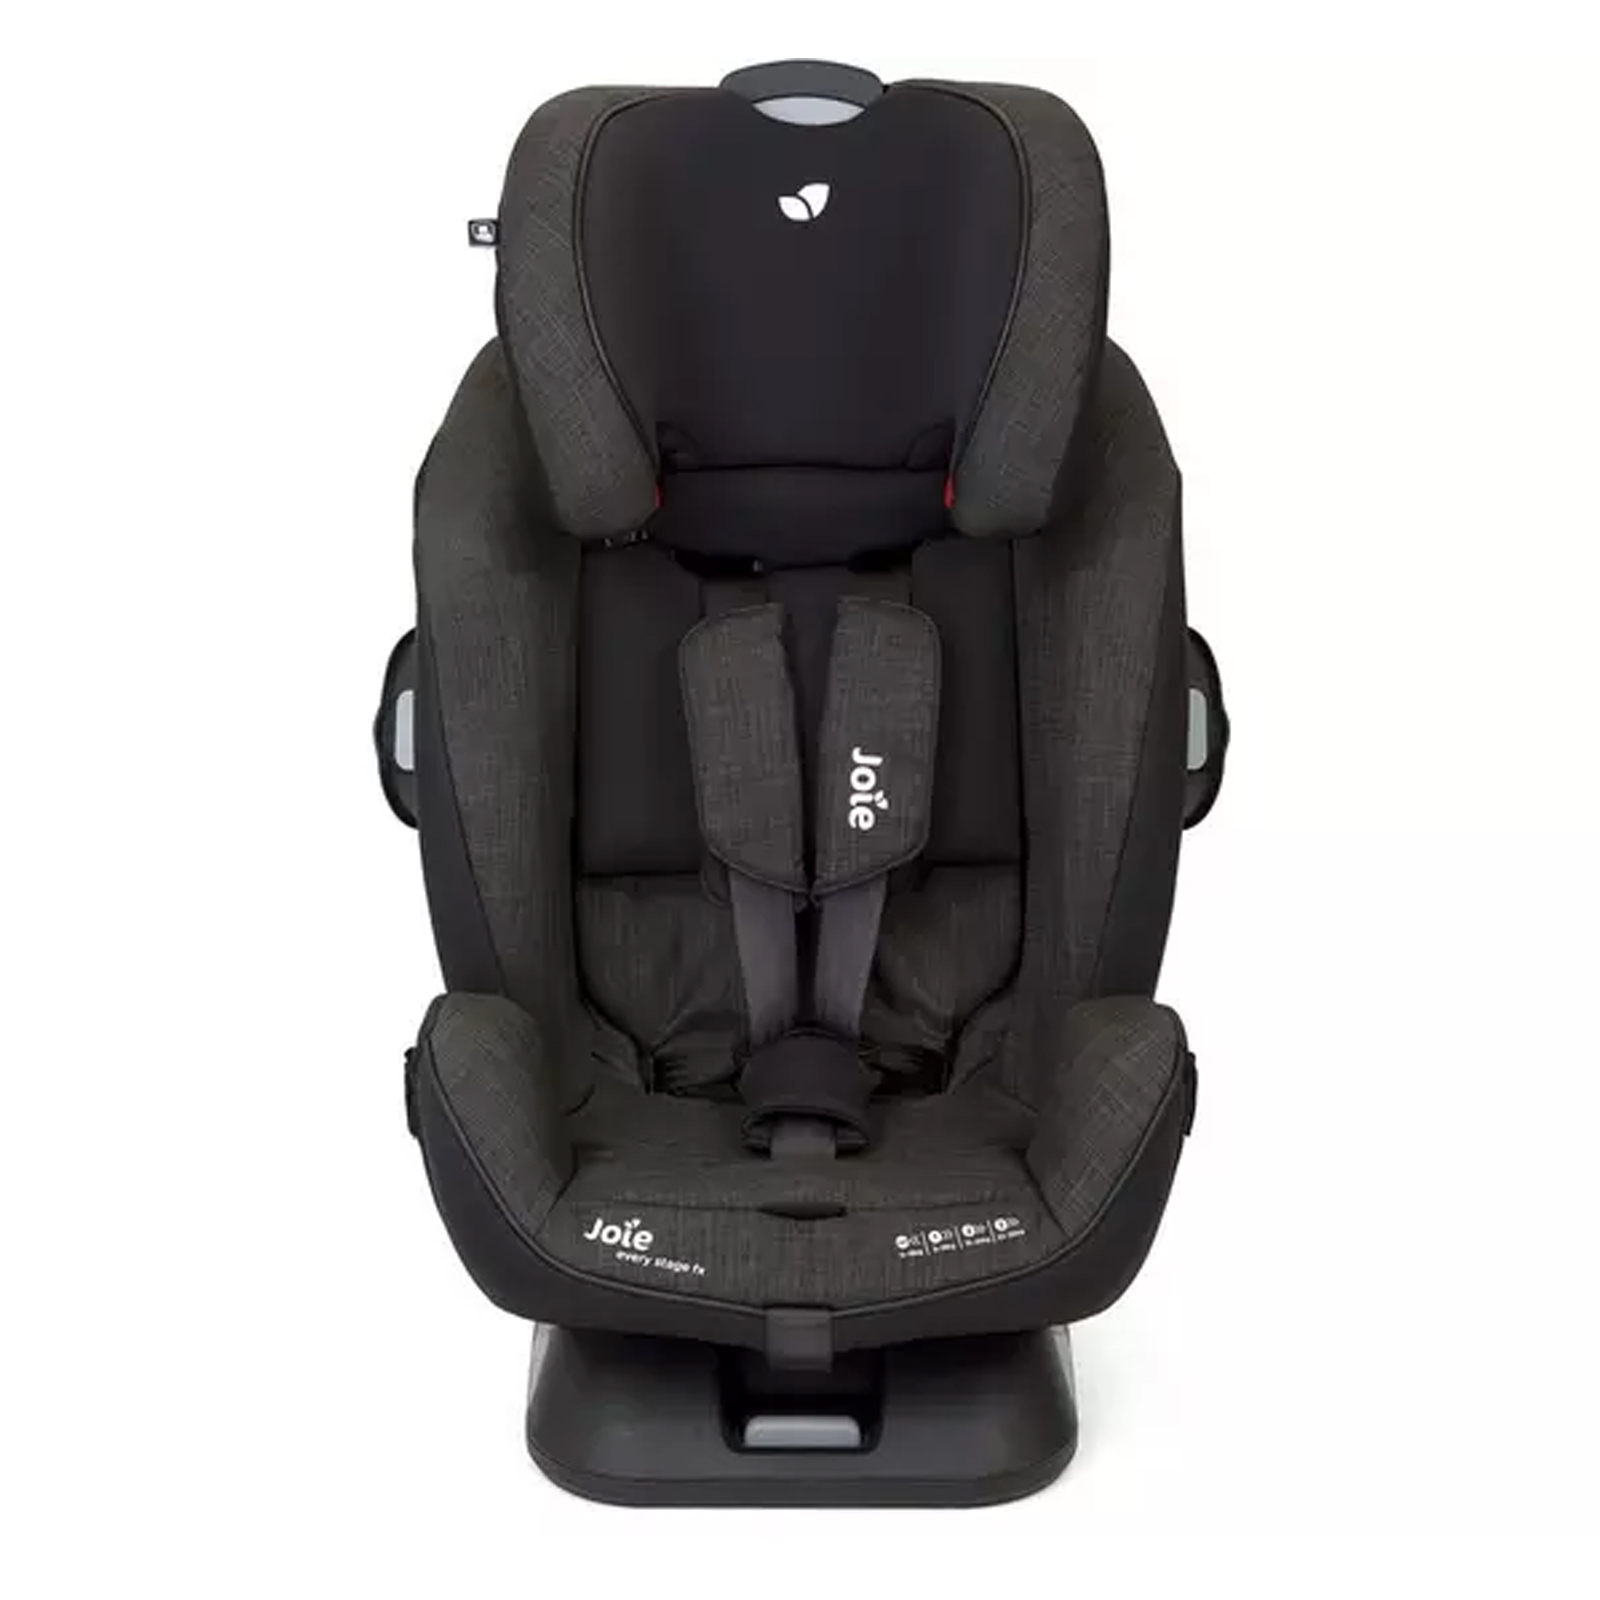 Joie Every Stage FX Isofix Group 0+,1,2,3 Car Seat - Flint ...